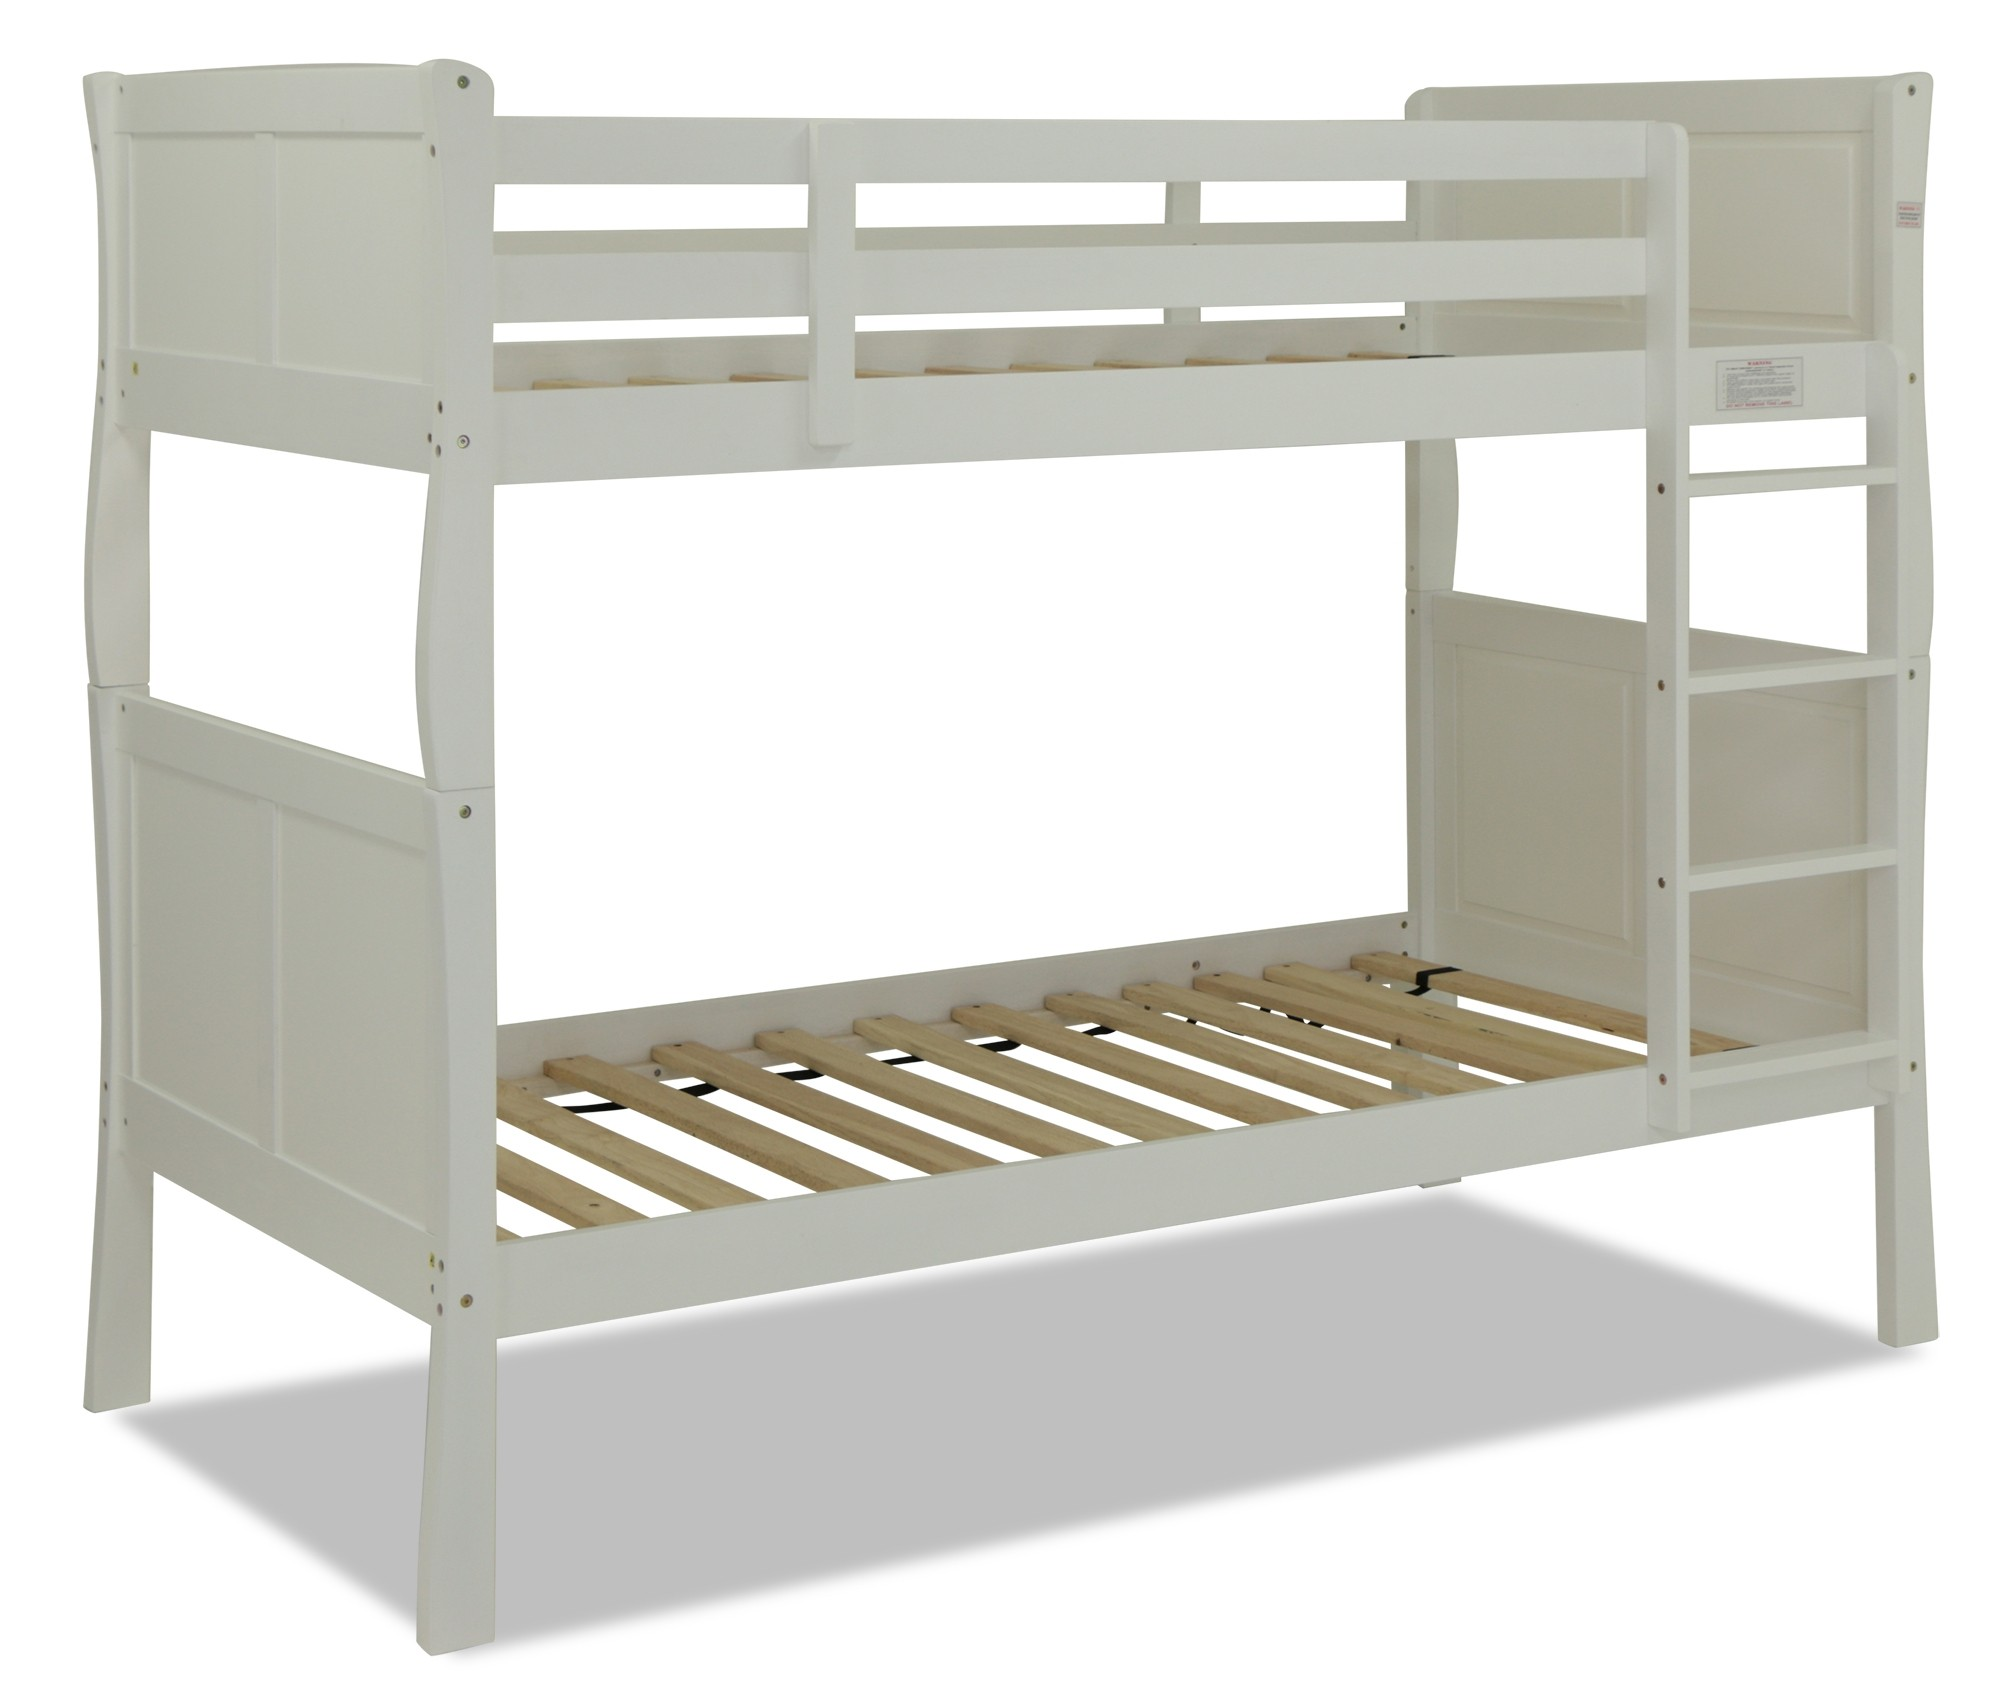 White Wooden Bunk Beds Ivy Wooden Bunk Bed White Furniture And Home Décor Fortytwo